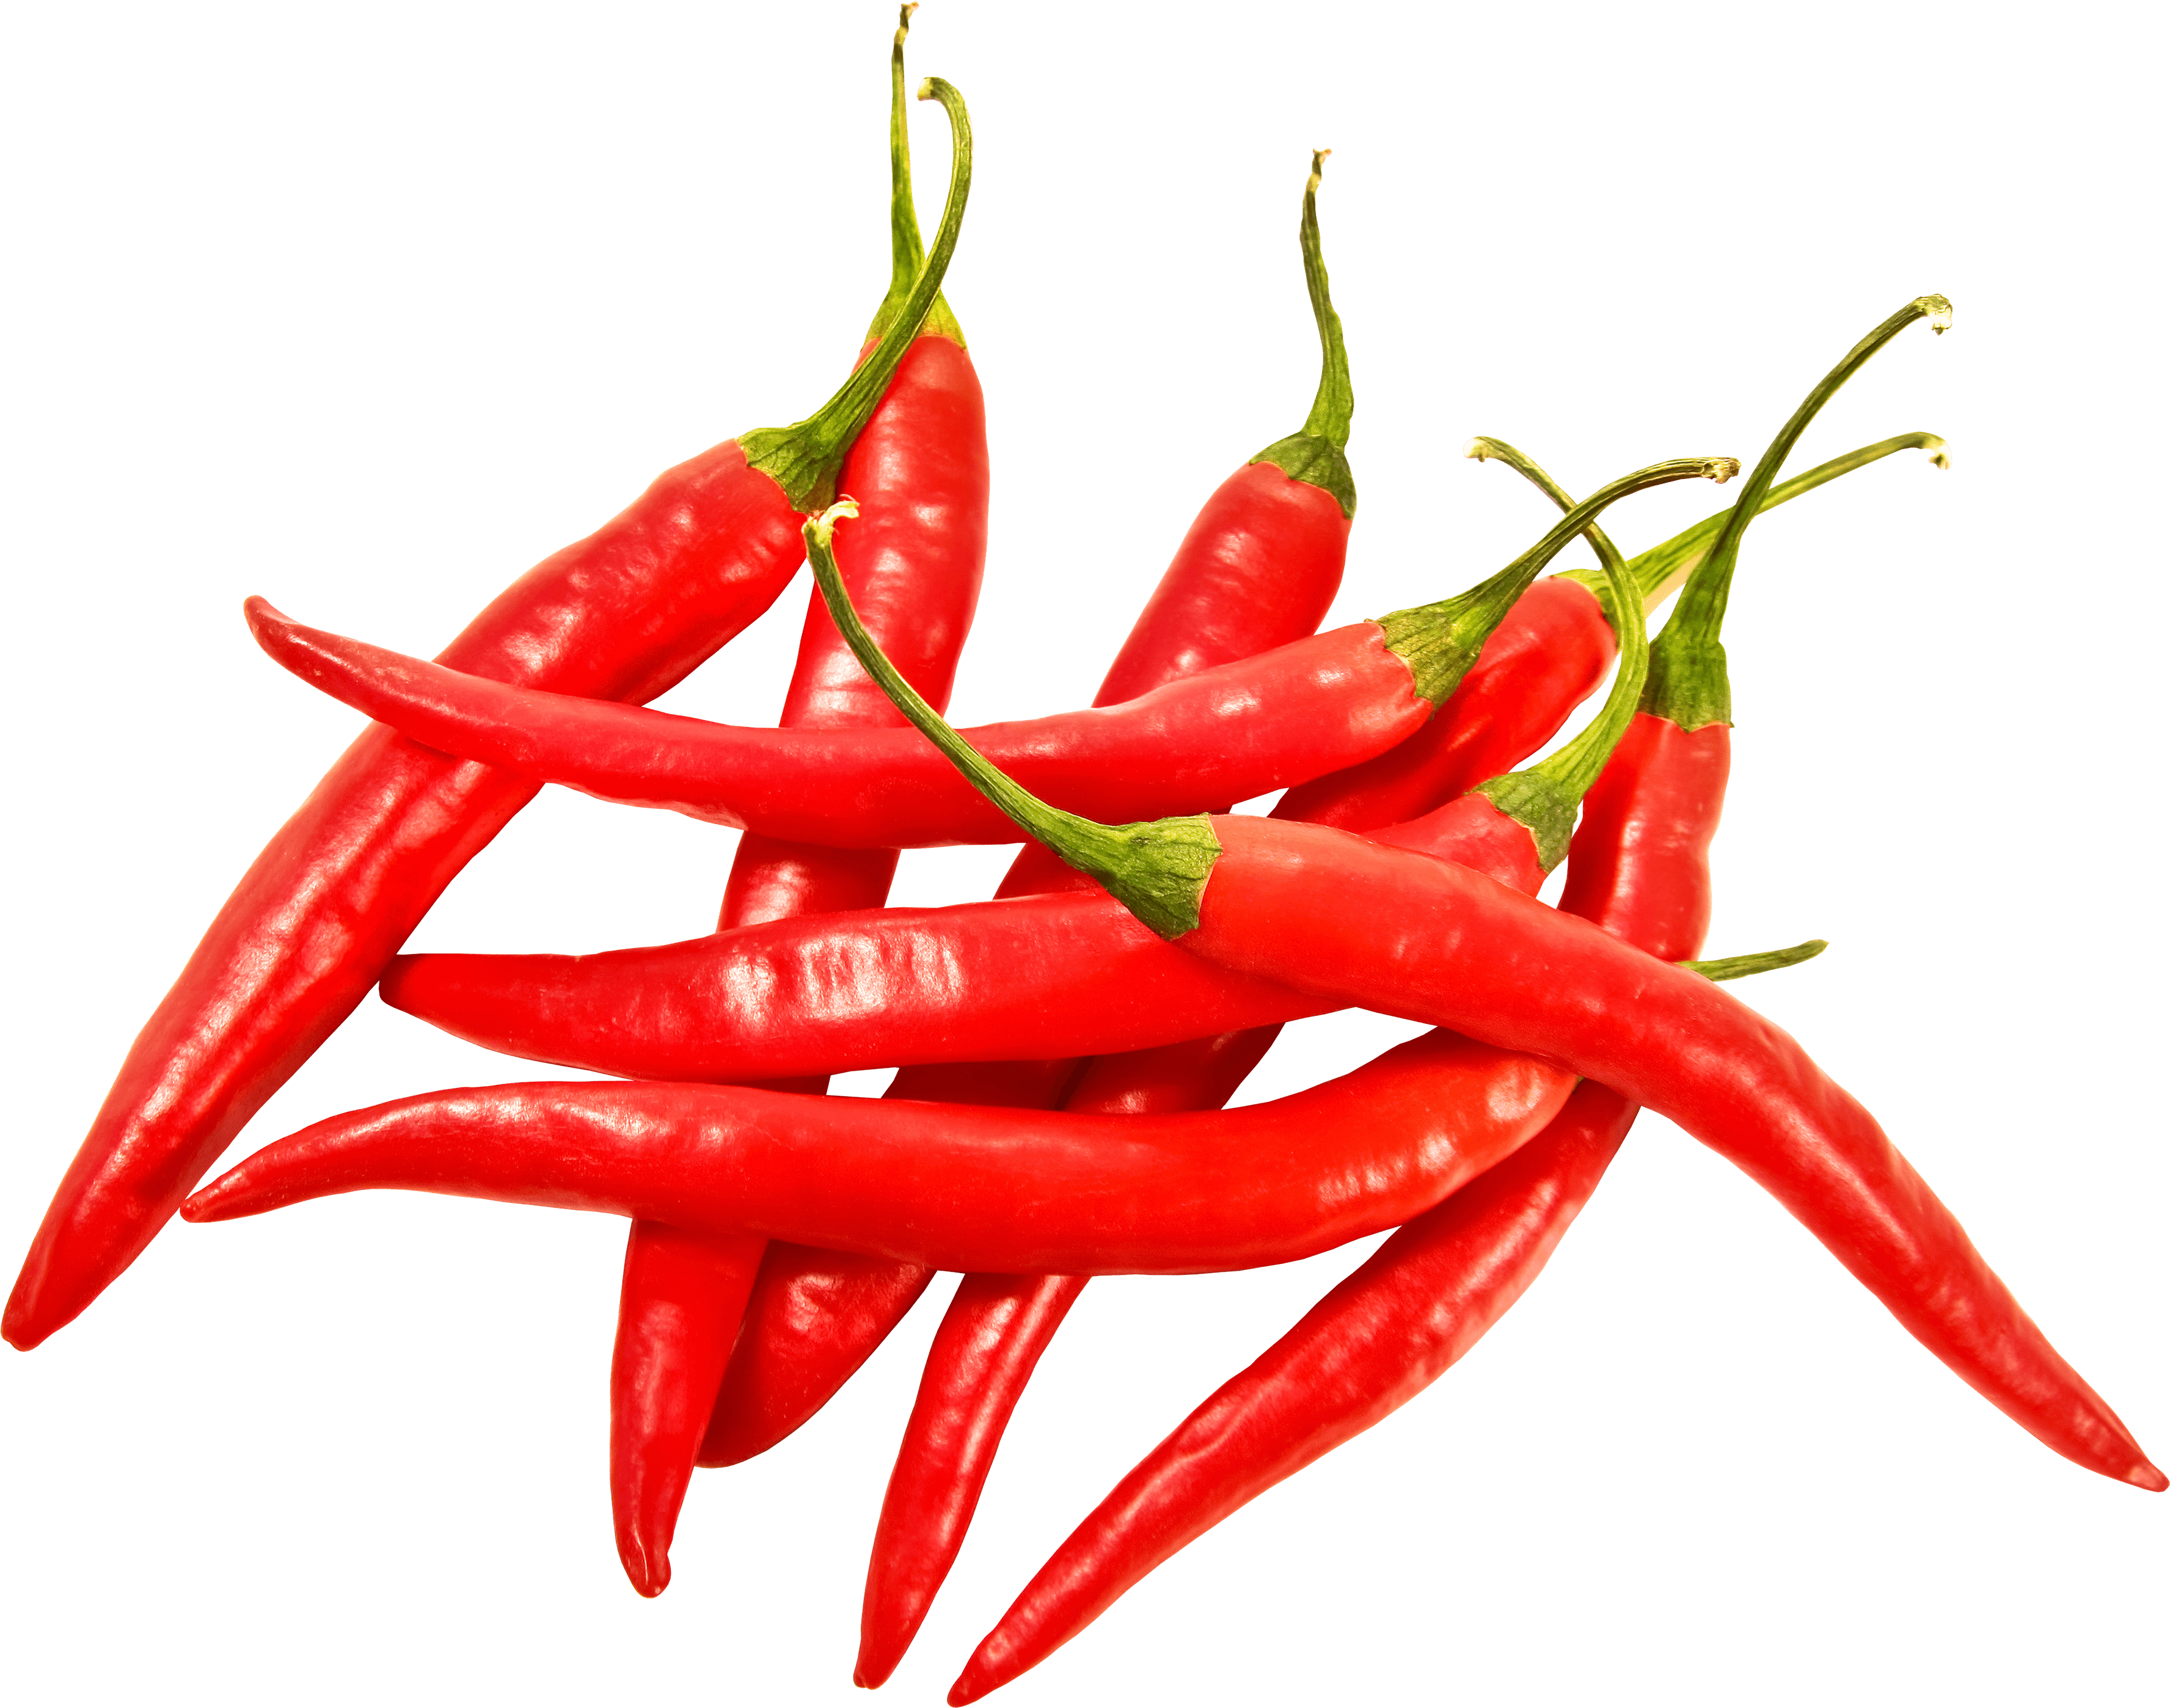 download red chili pepper png image png image pngimg #22934